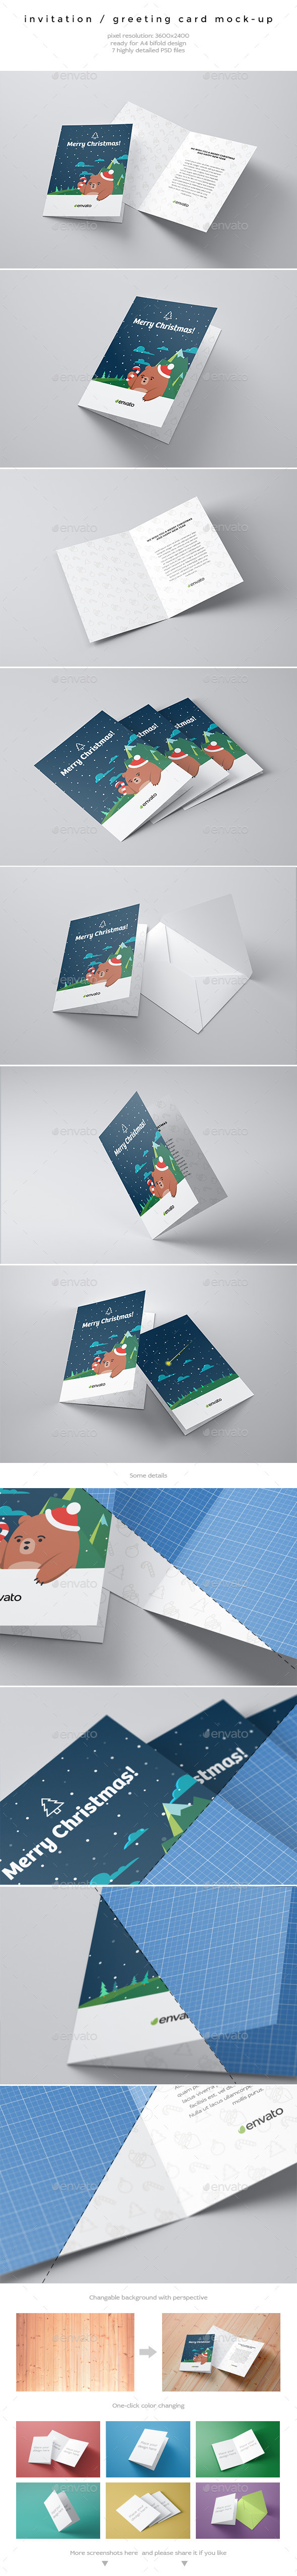 GraphicRiver Invitation Greeting Card Mock-Up 9789347